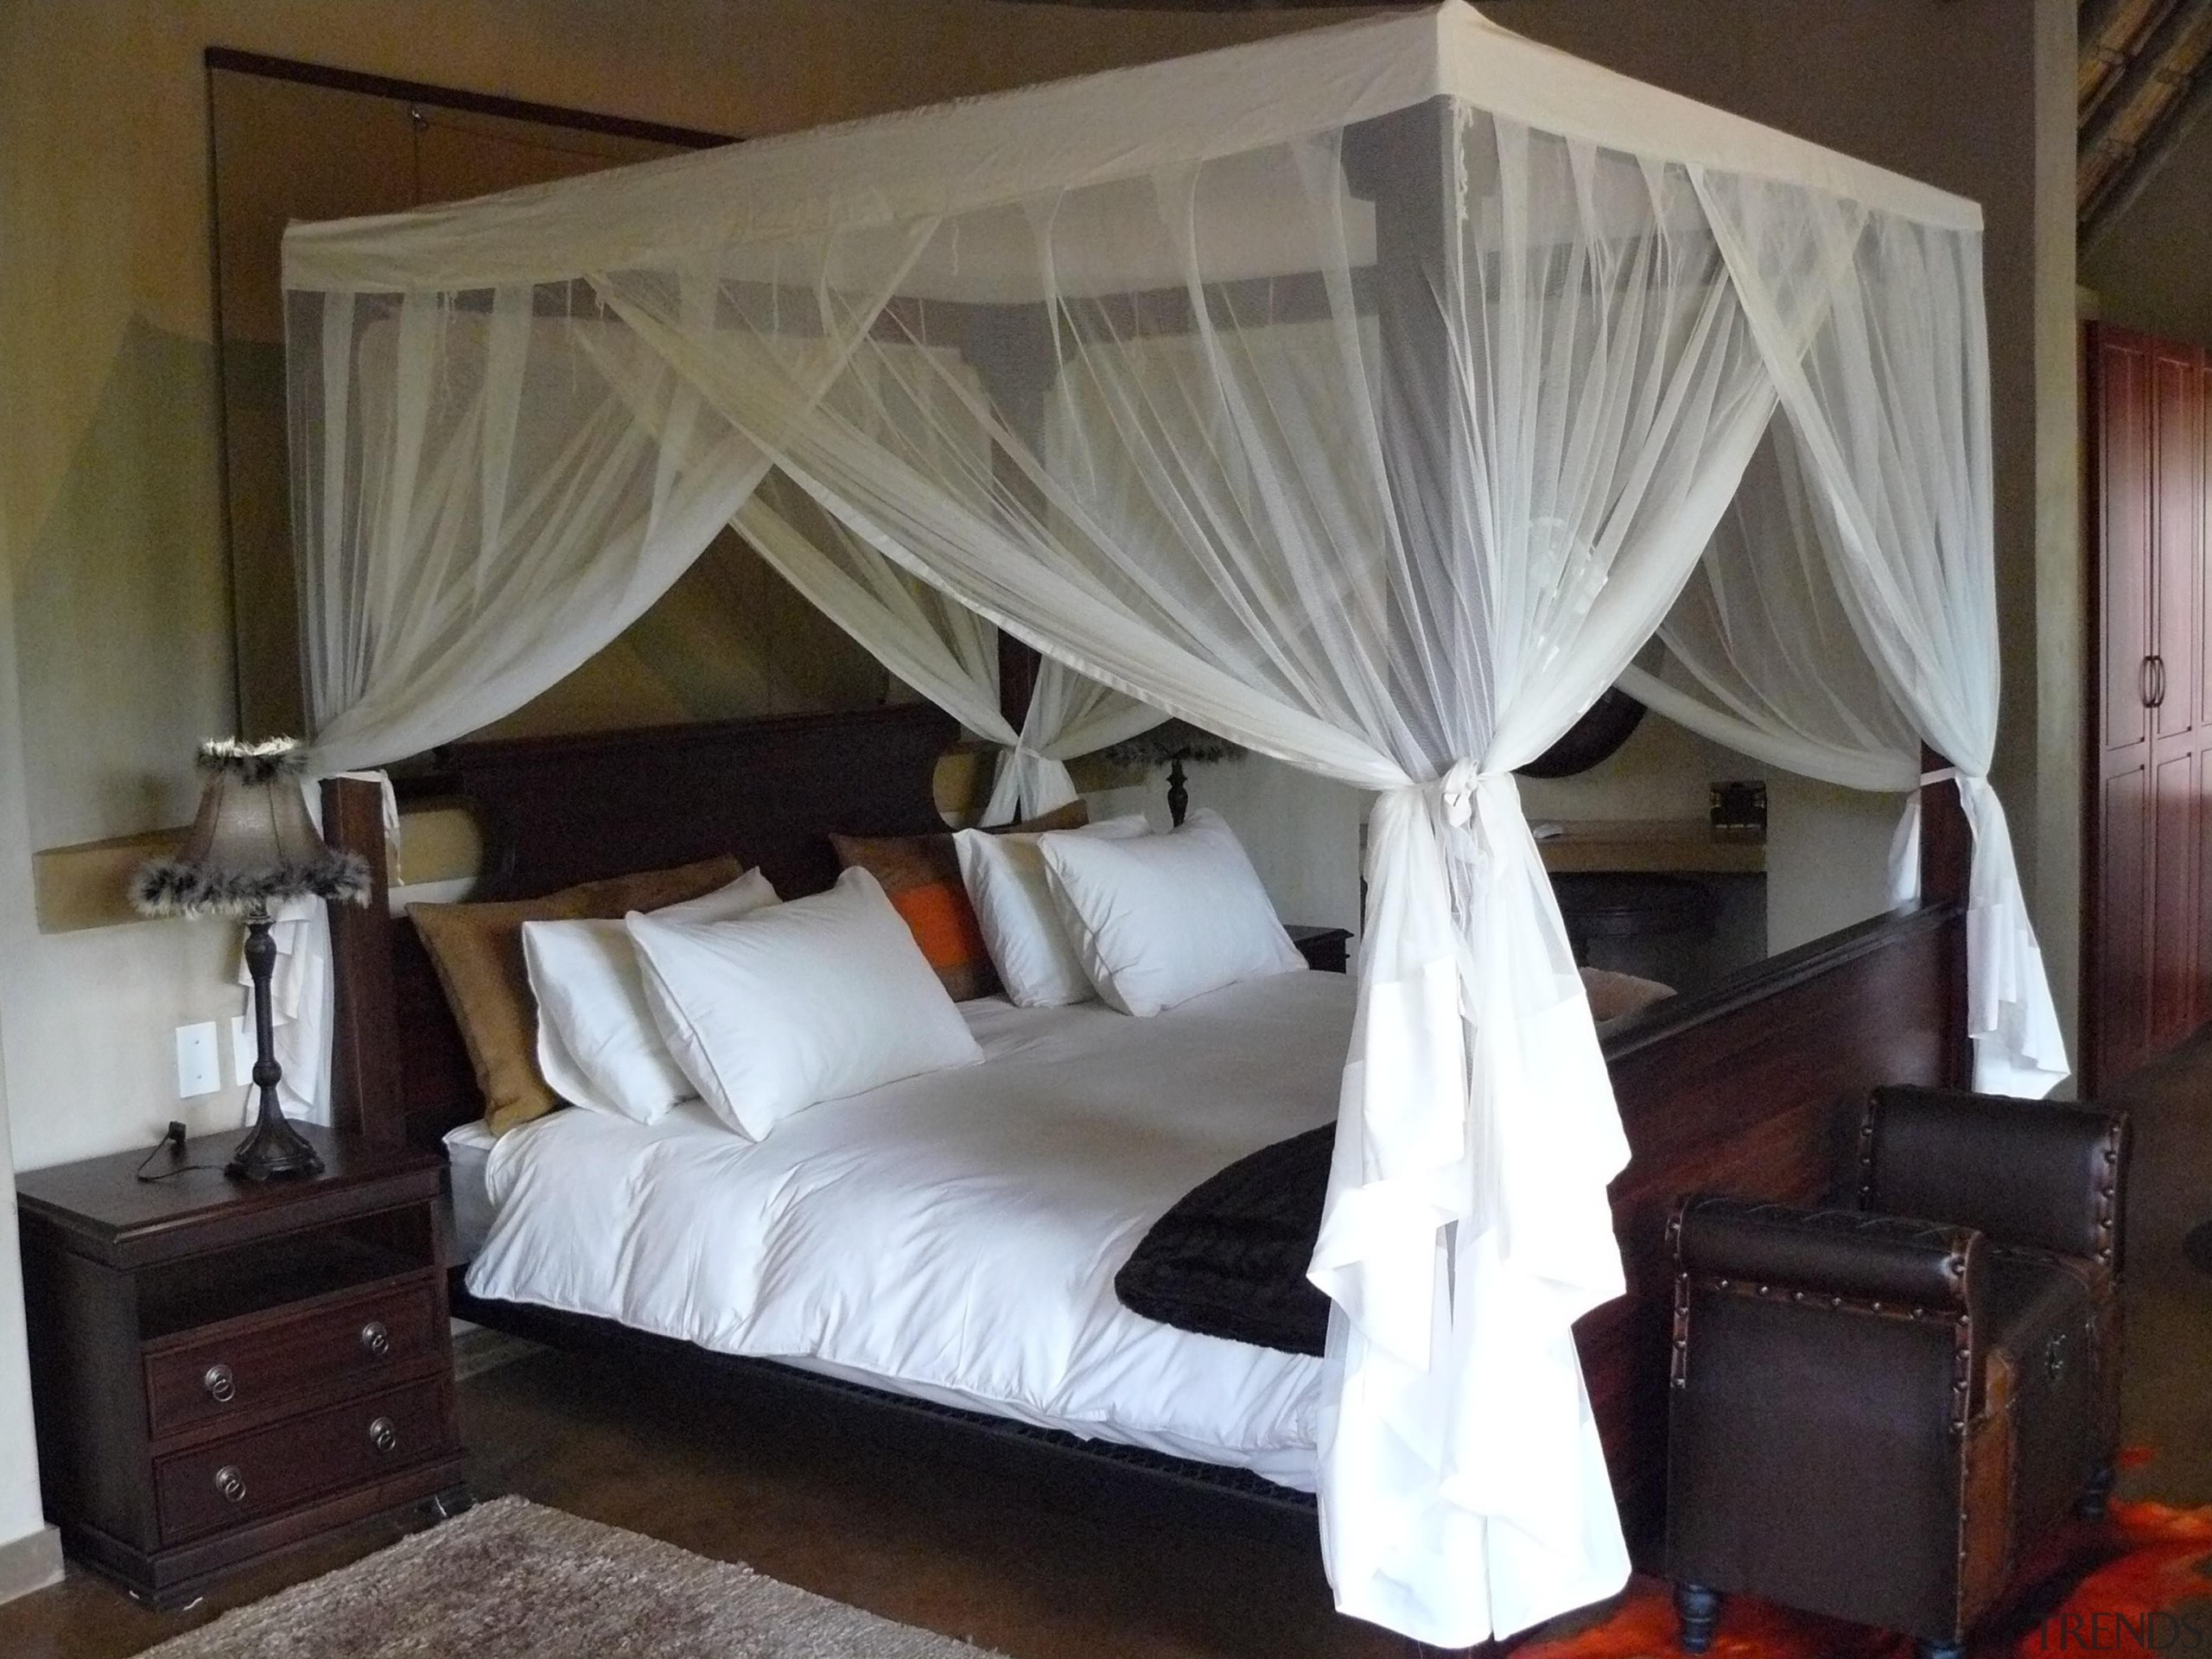 Colour hardener  12 - Colour_hardener__12 - bed bed, bed frame, bedroom, ceiling, curtain, four poster, furniture, home, interior design, property, room, textile, window, window covering, window treatment, gray, black